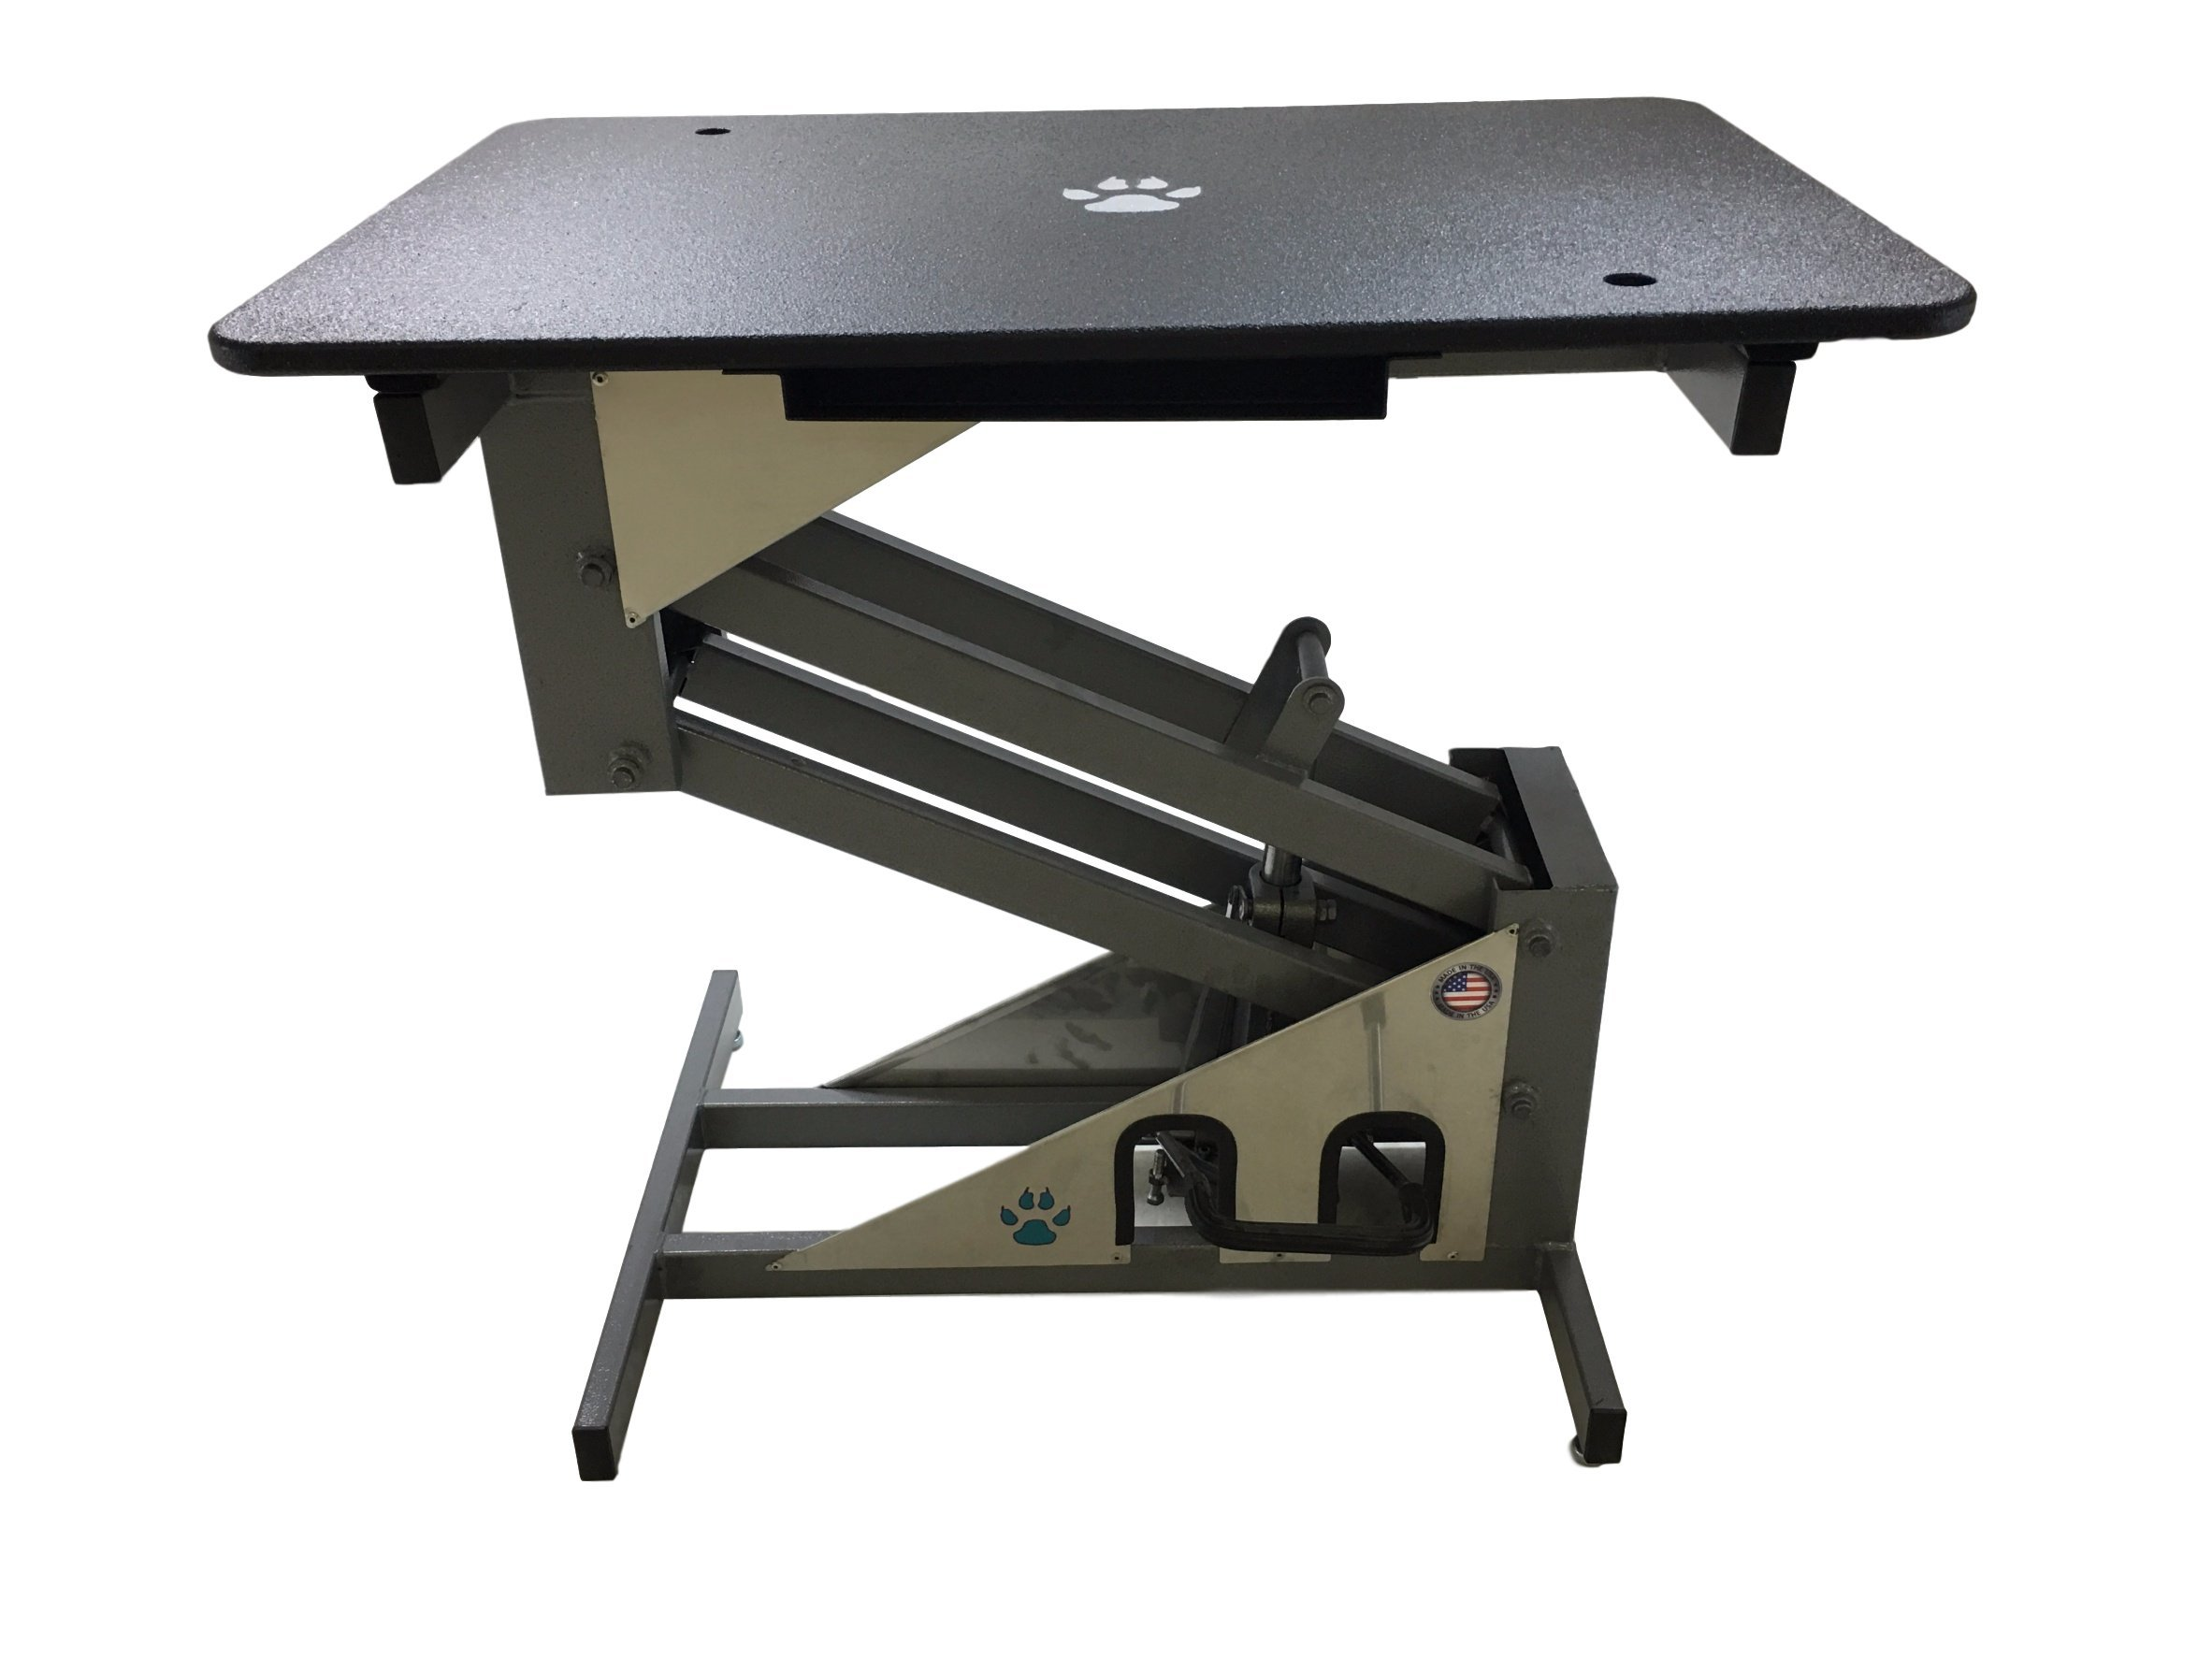 Groomer's Best Hydraulic Grooming Table for Pets, 24 by 36-Inch